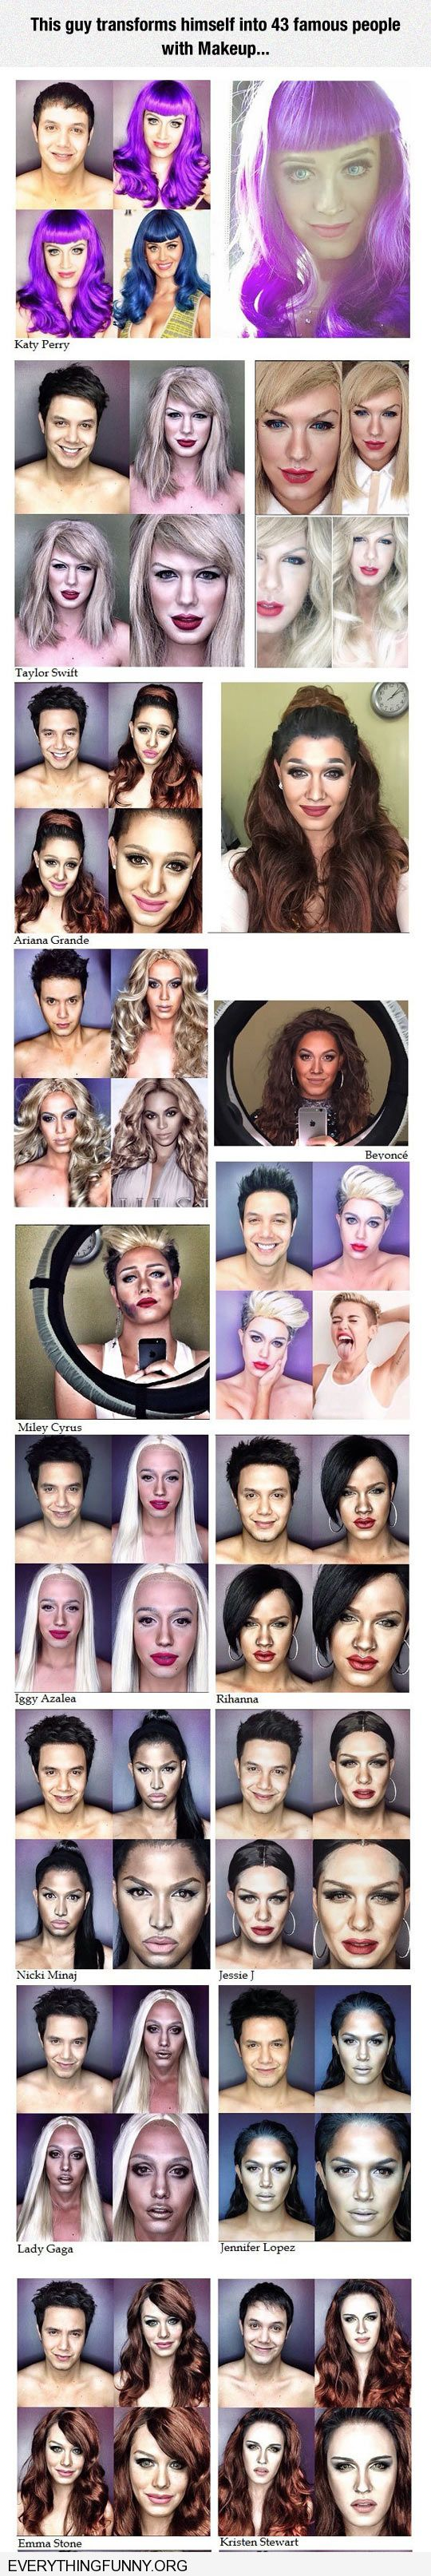 funny guy transforms himself into 43 different famous people with makeup